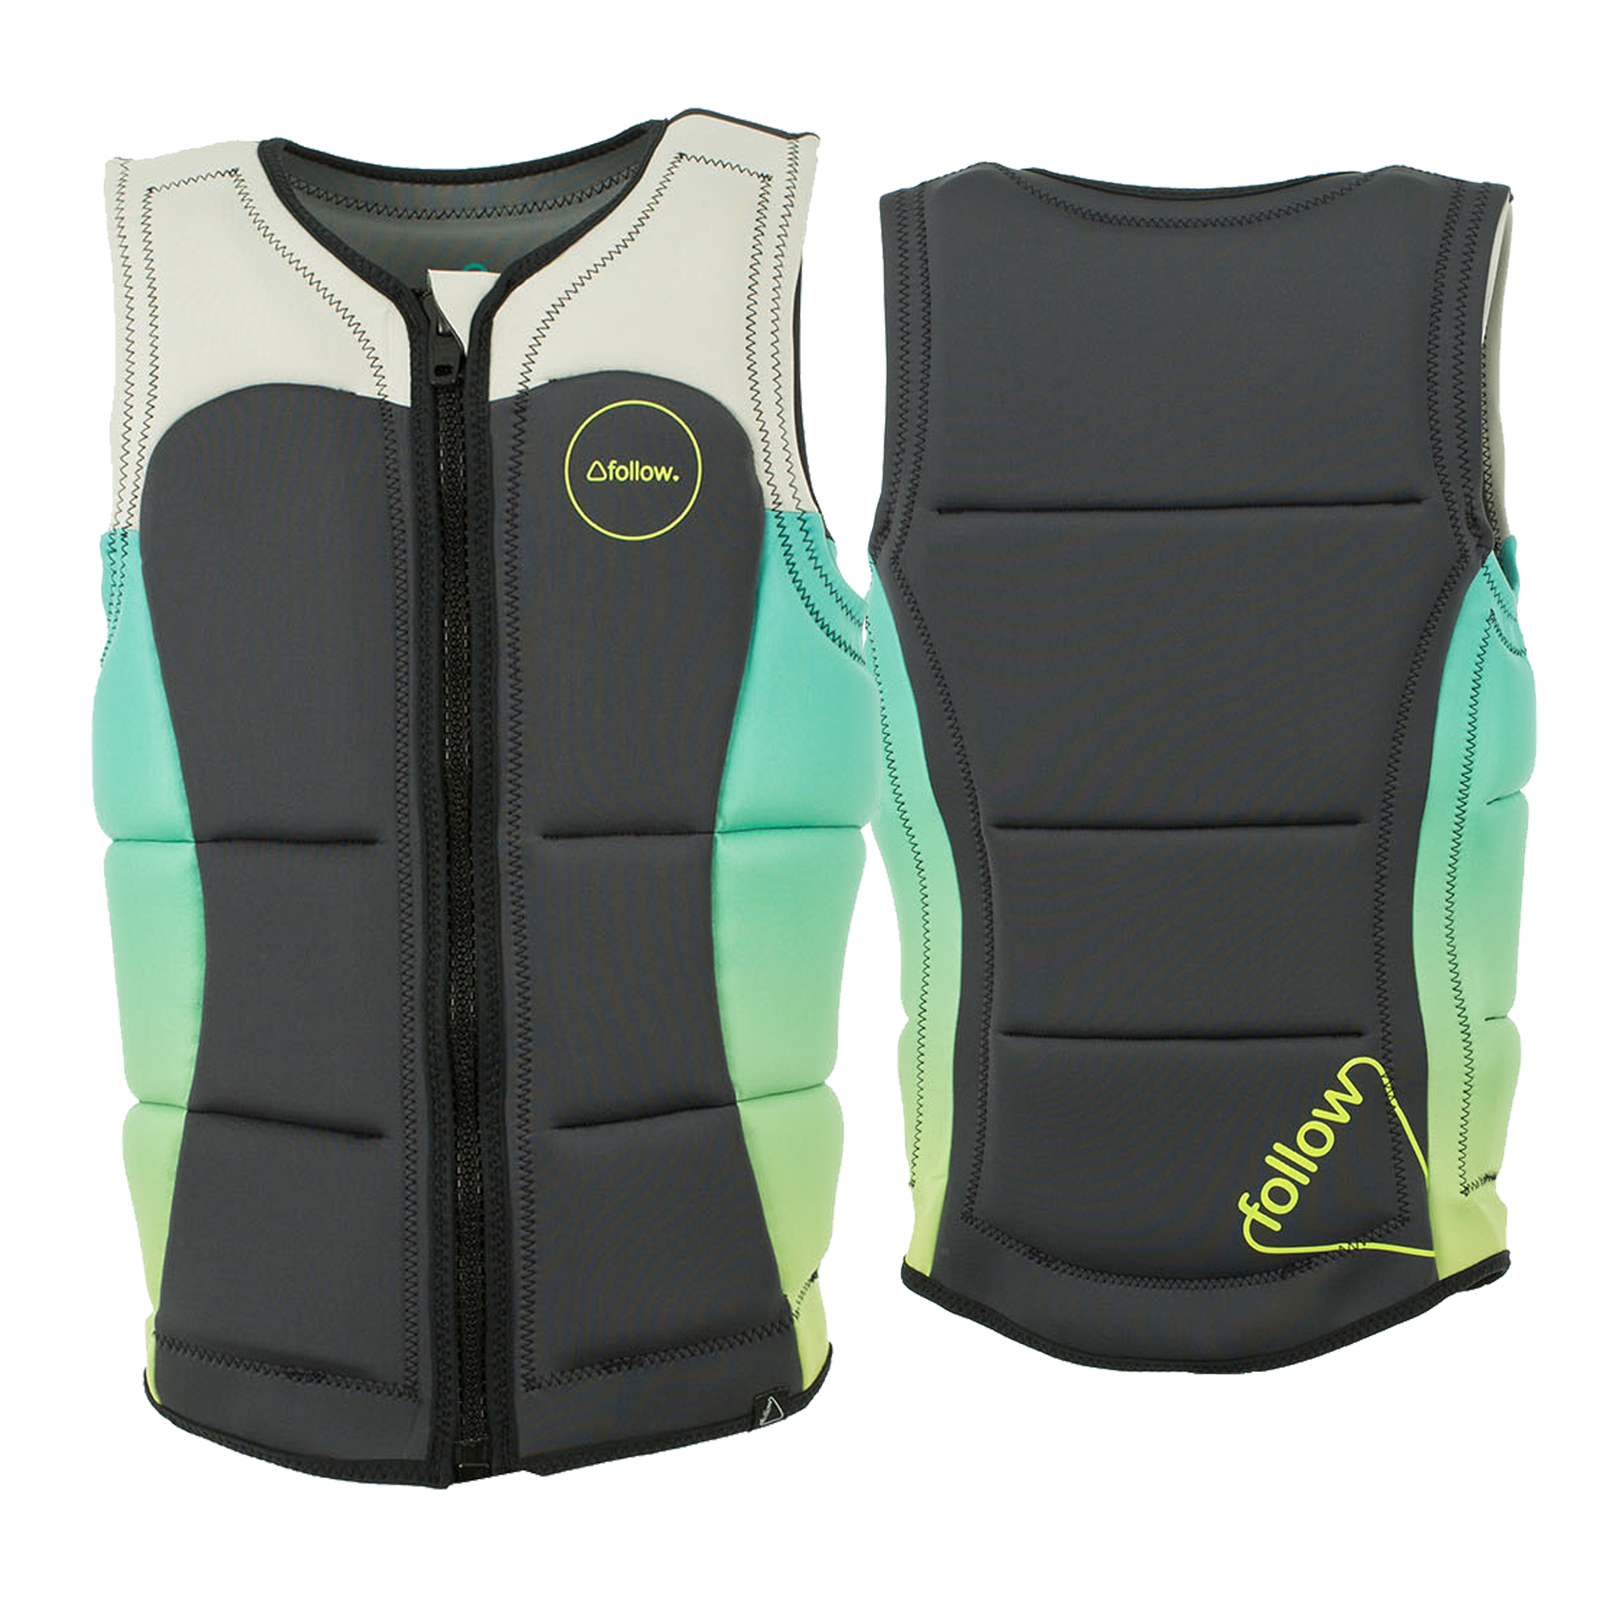 ATLANTIS PRO IMPACT VEST - TEAL/CHARCOAL FOLLOW 2017